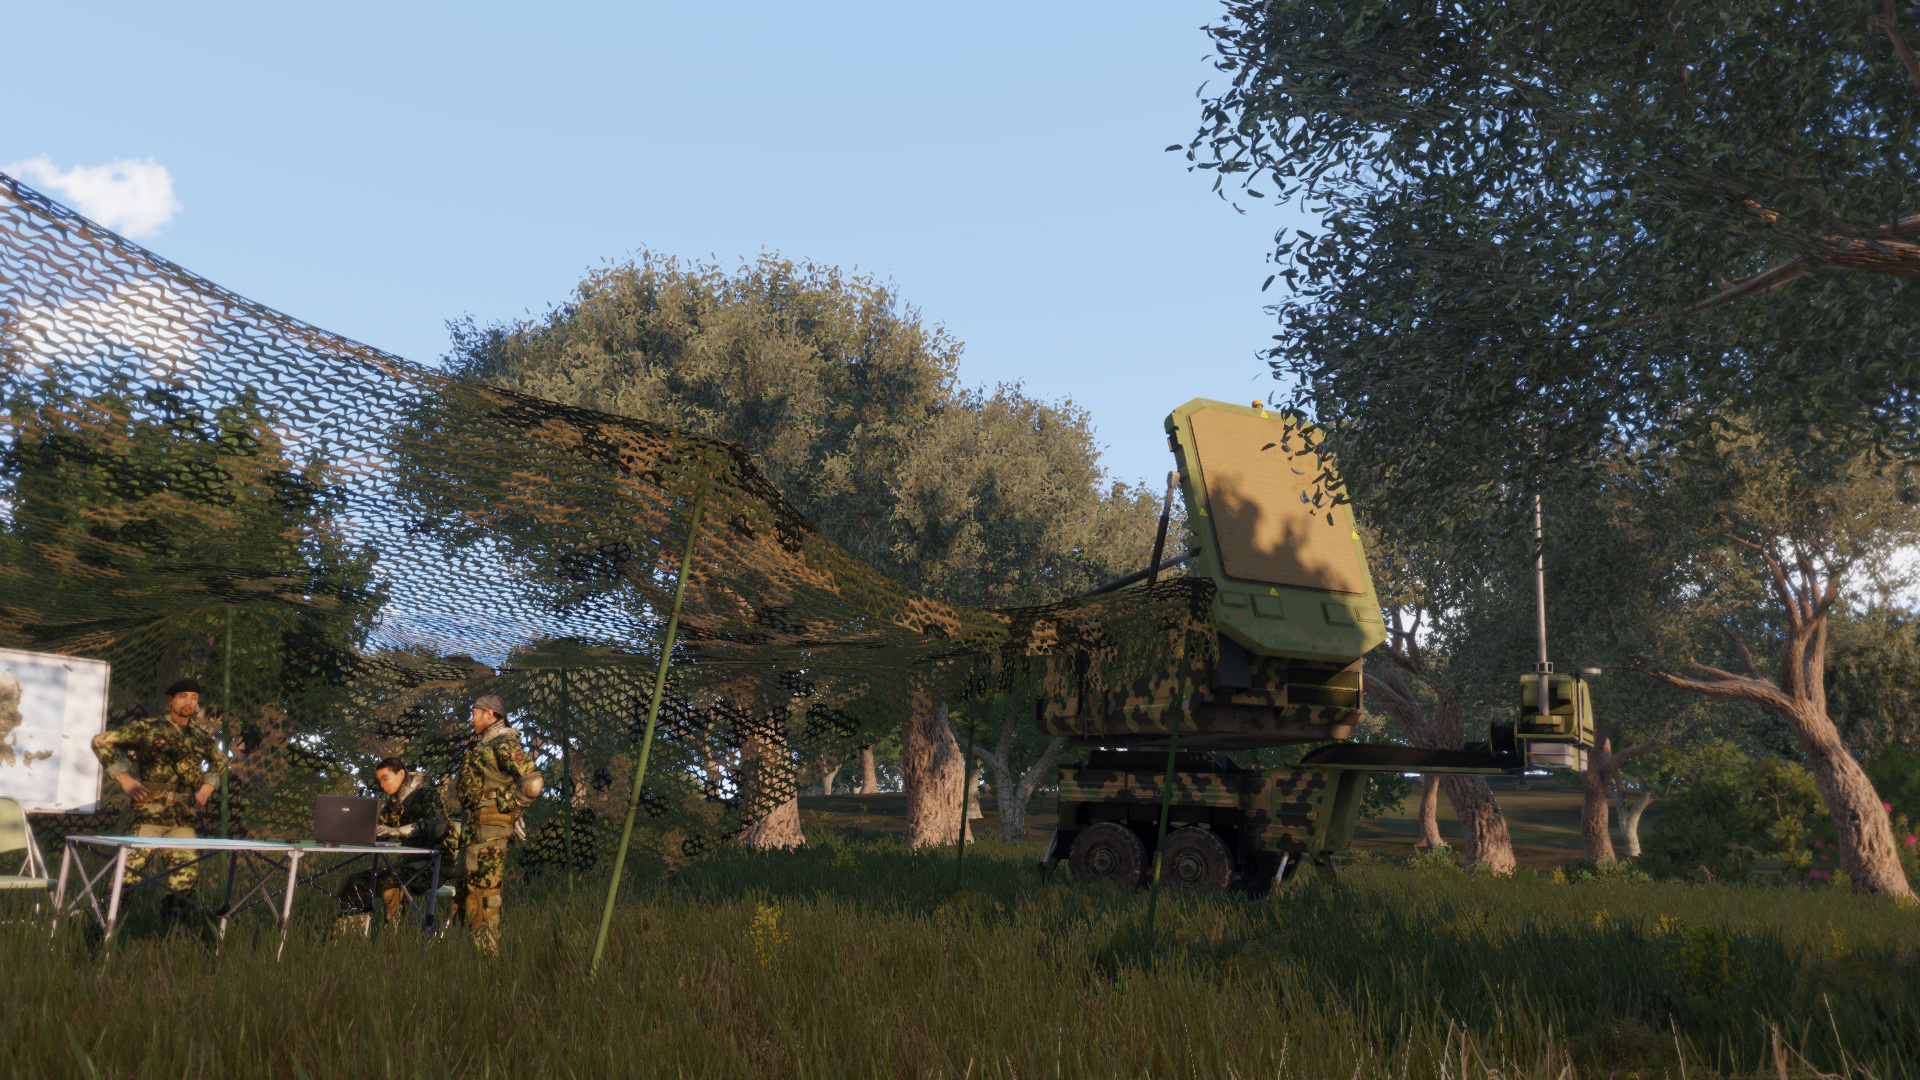 dev.arma3.com/assets/img/post/images/CSAT_Radar.jpg